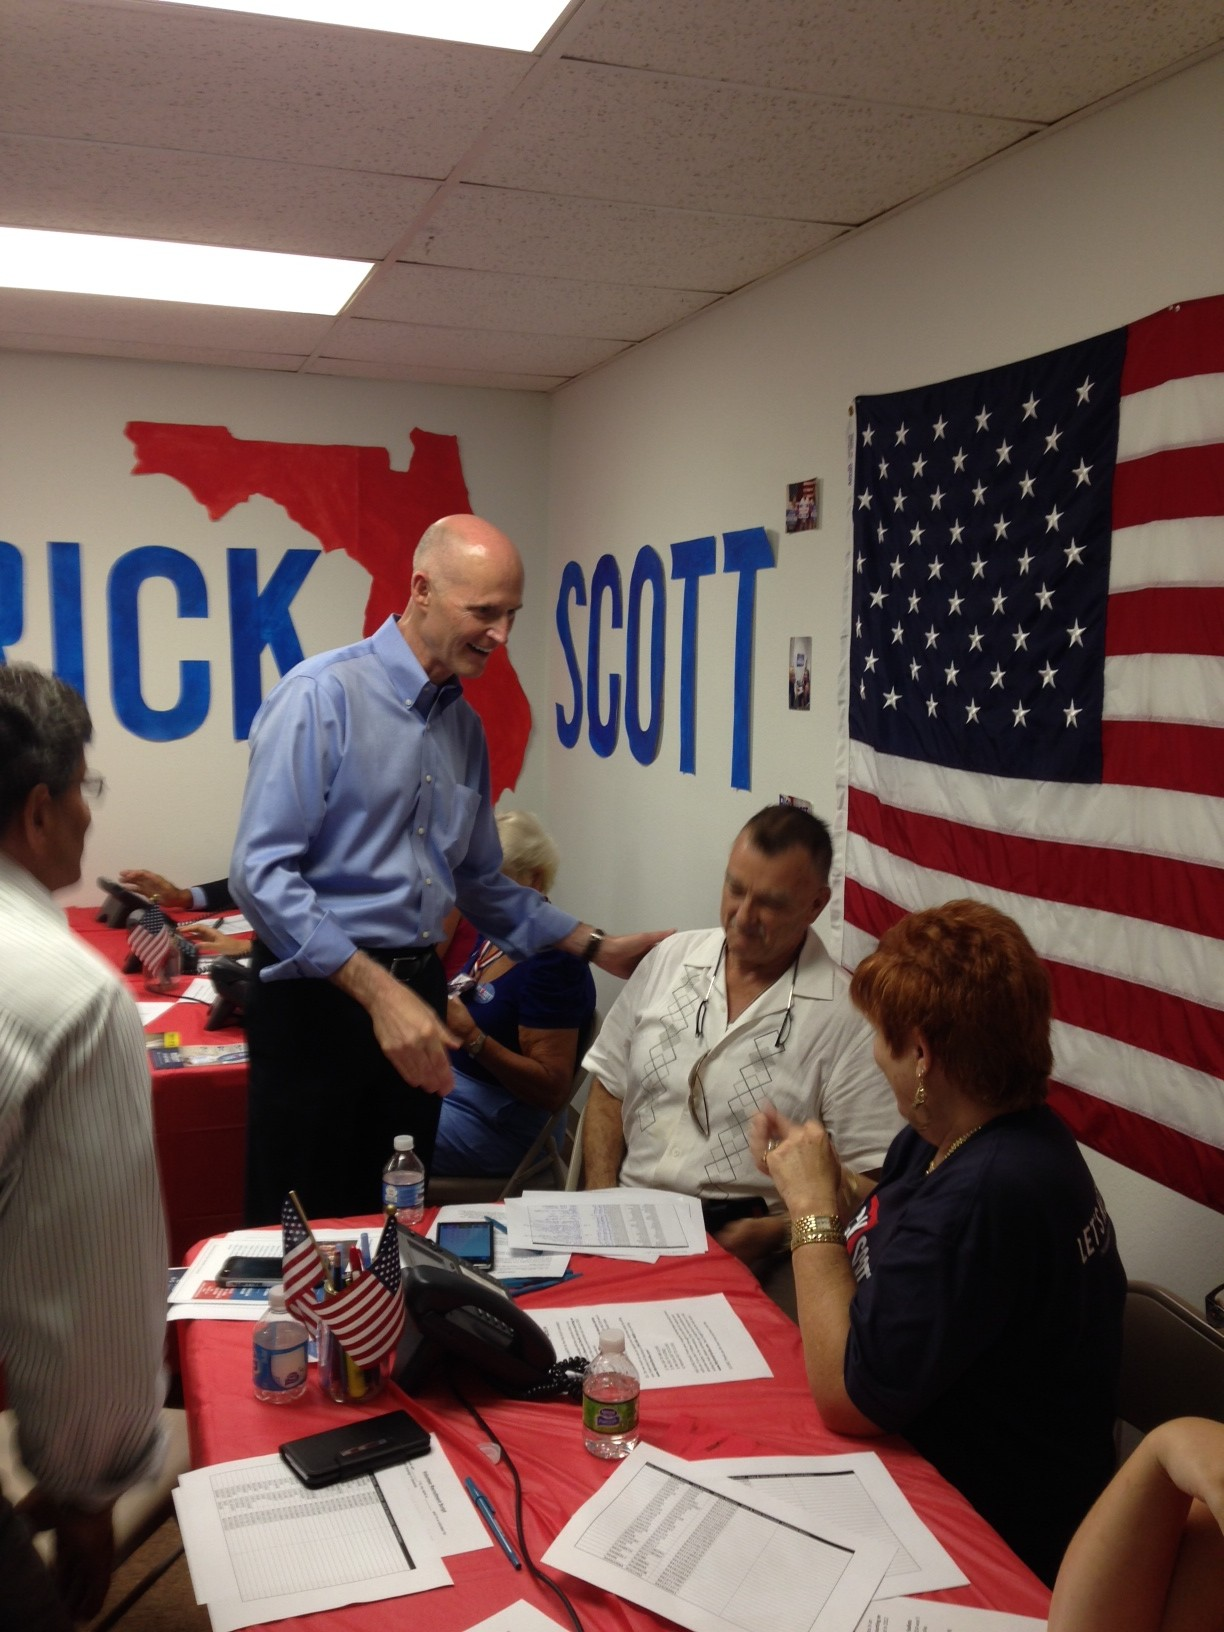 Rick Scott meeting volunteers